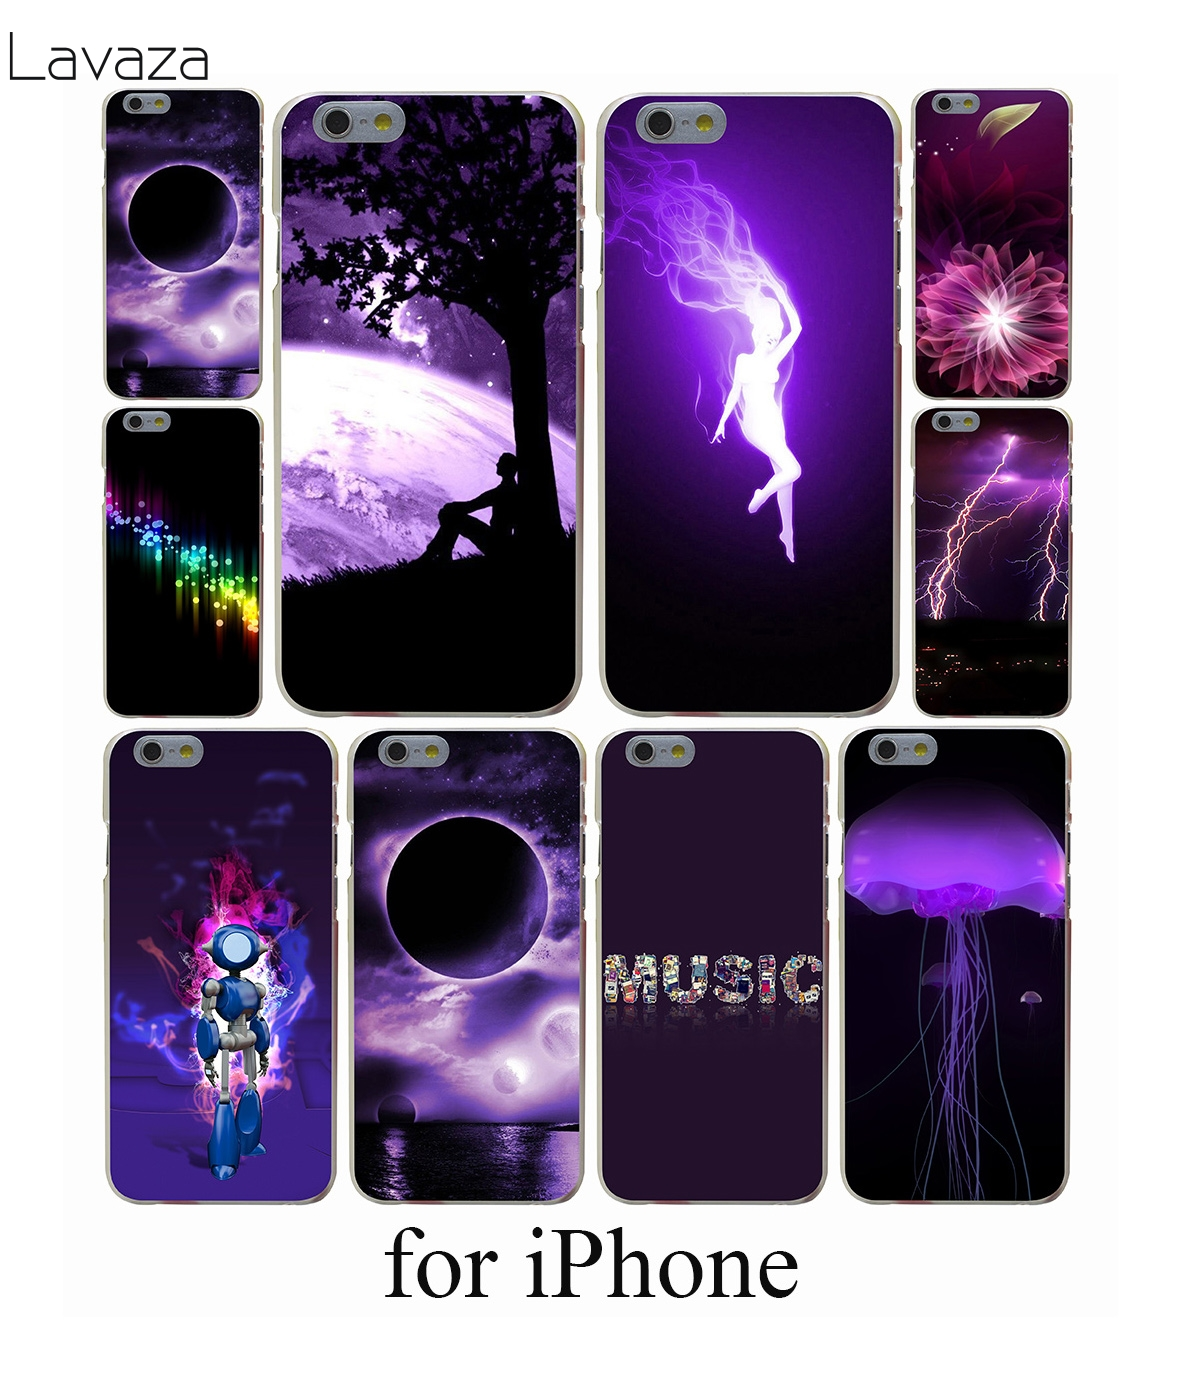 newest aa345 e7585 US $1.99 20% OFF|Lavaza Dark Purple Flowers Hard Case for iPhone X S R XR  XS Max 7 8 6s 6 Plus 5 5s 5c SE 4 4S-in Half-wrapped Case from Cellphones &  ...